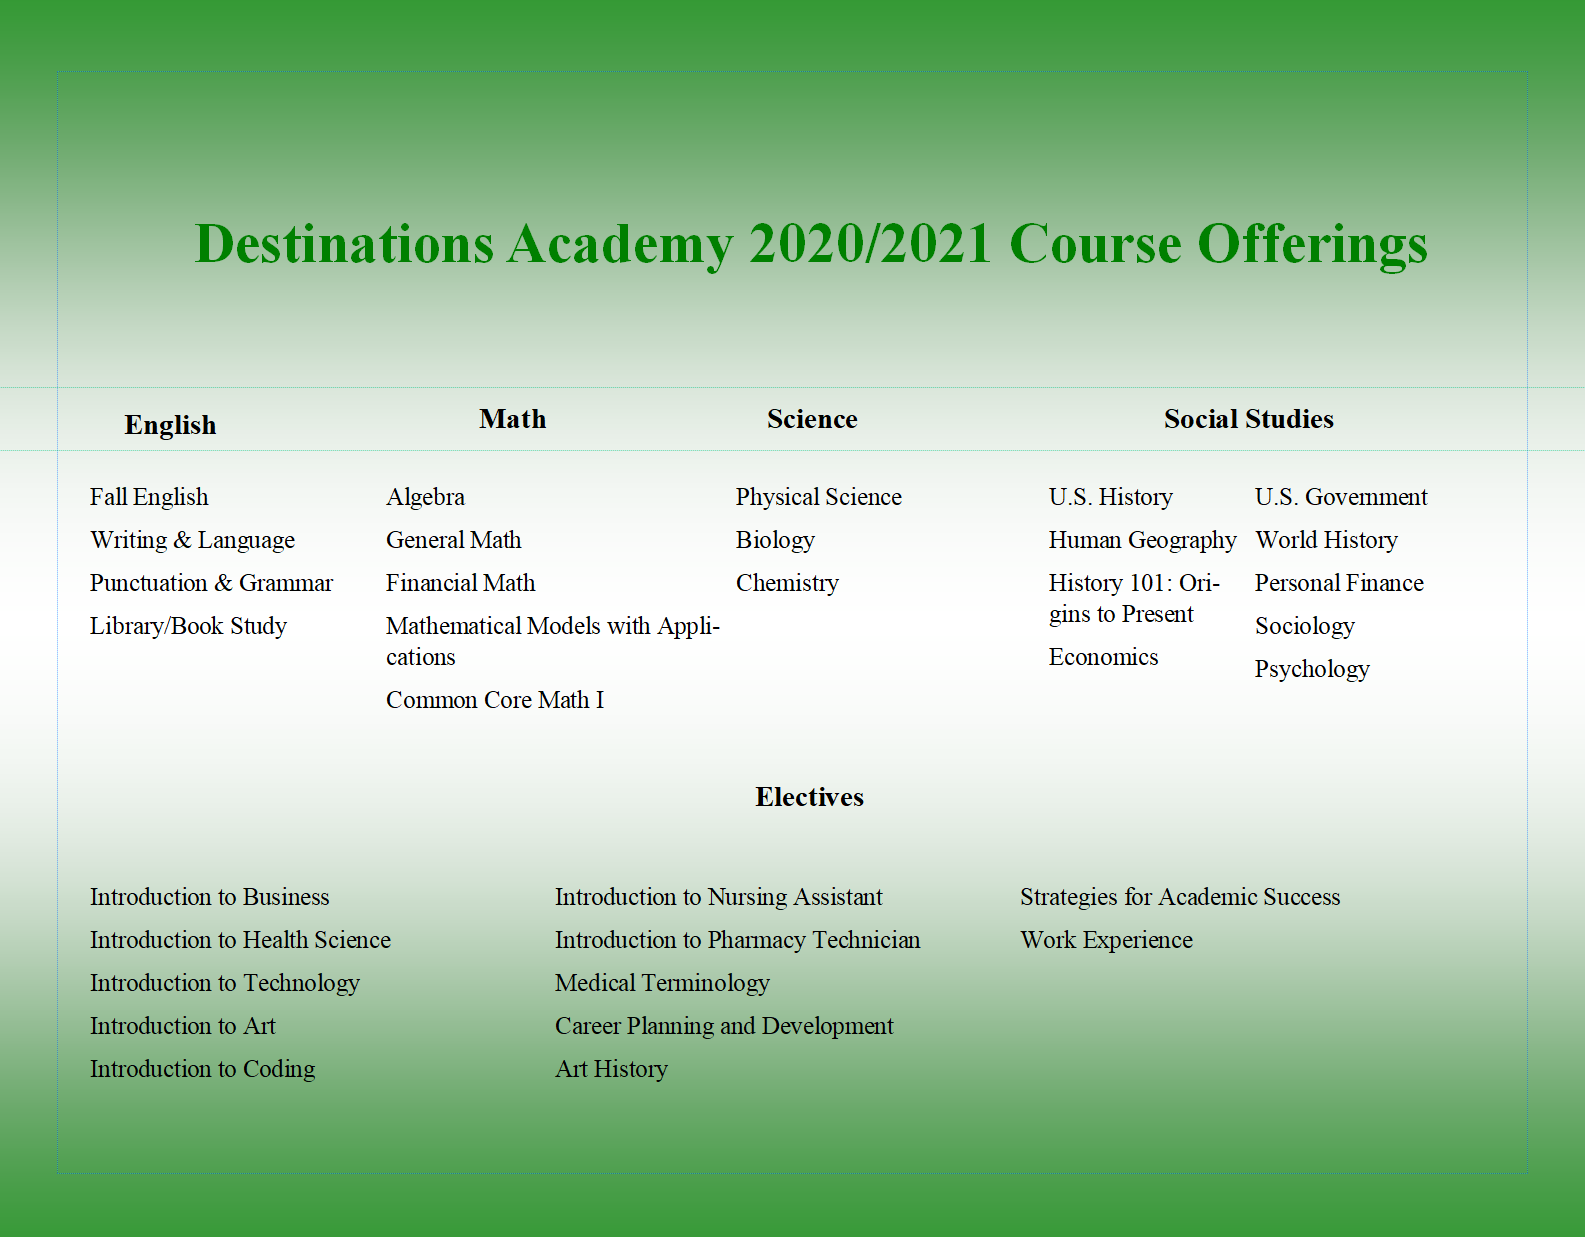 Destinations Academy Course Offerings